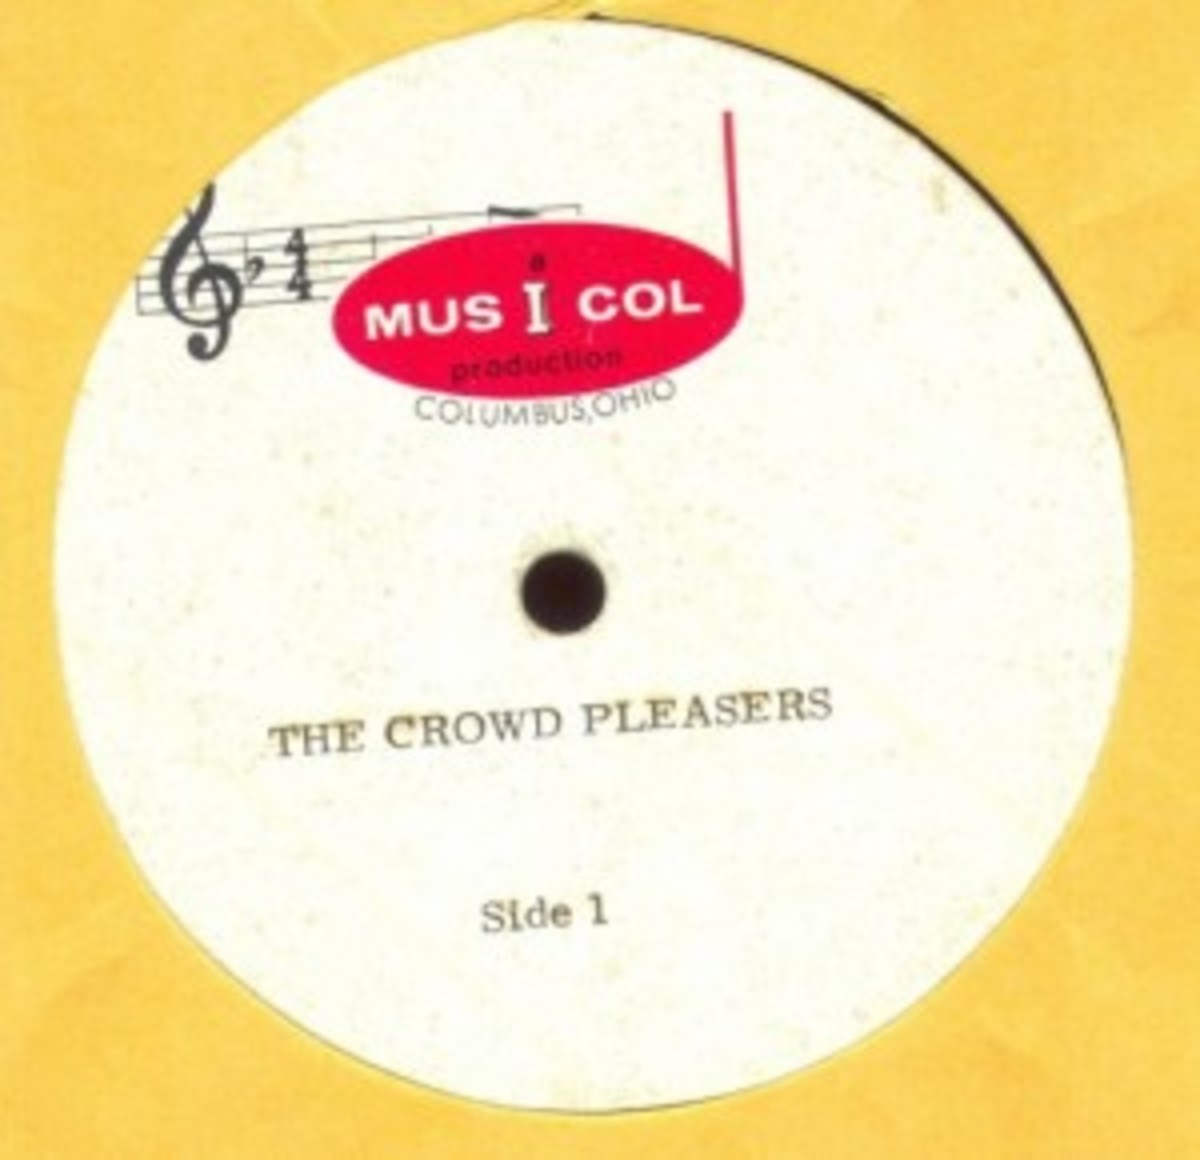 The Crowd Pleasers acetate on Musicol